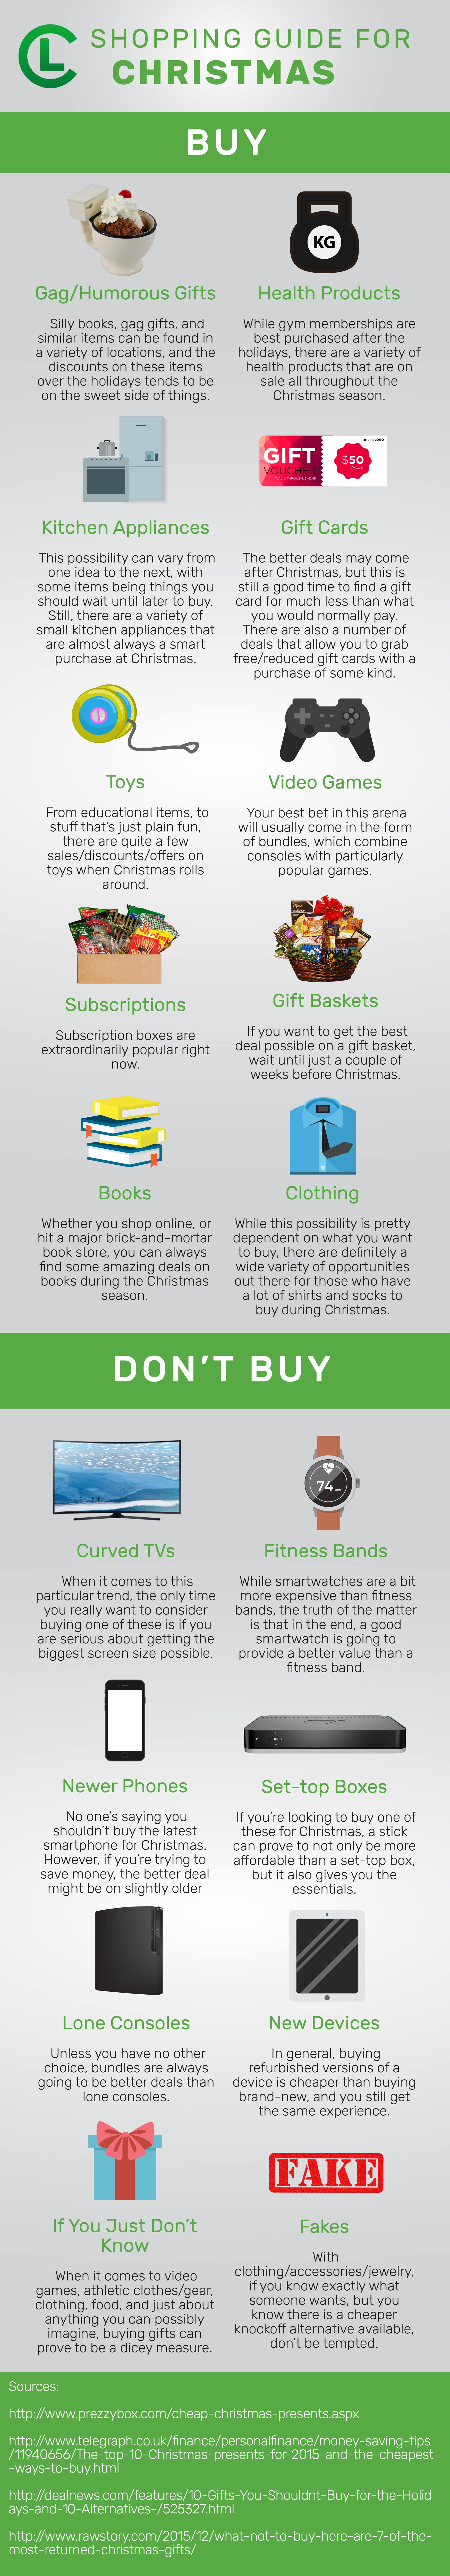 Shopping Guide For Christmas Infographic